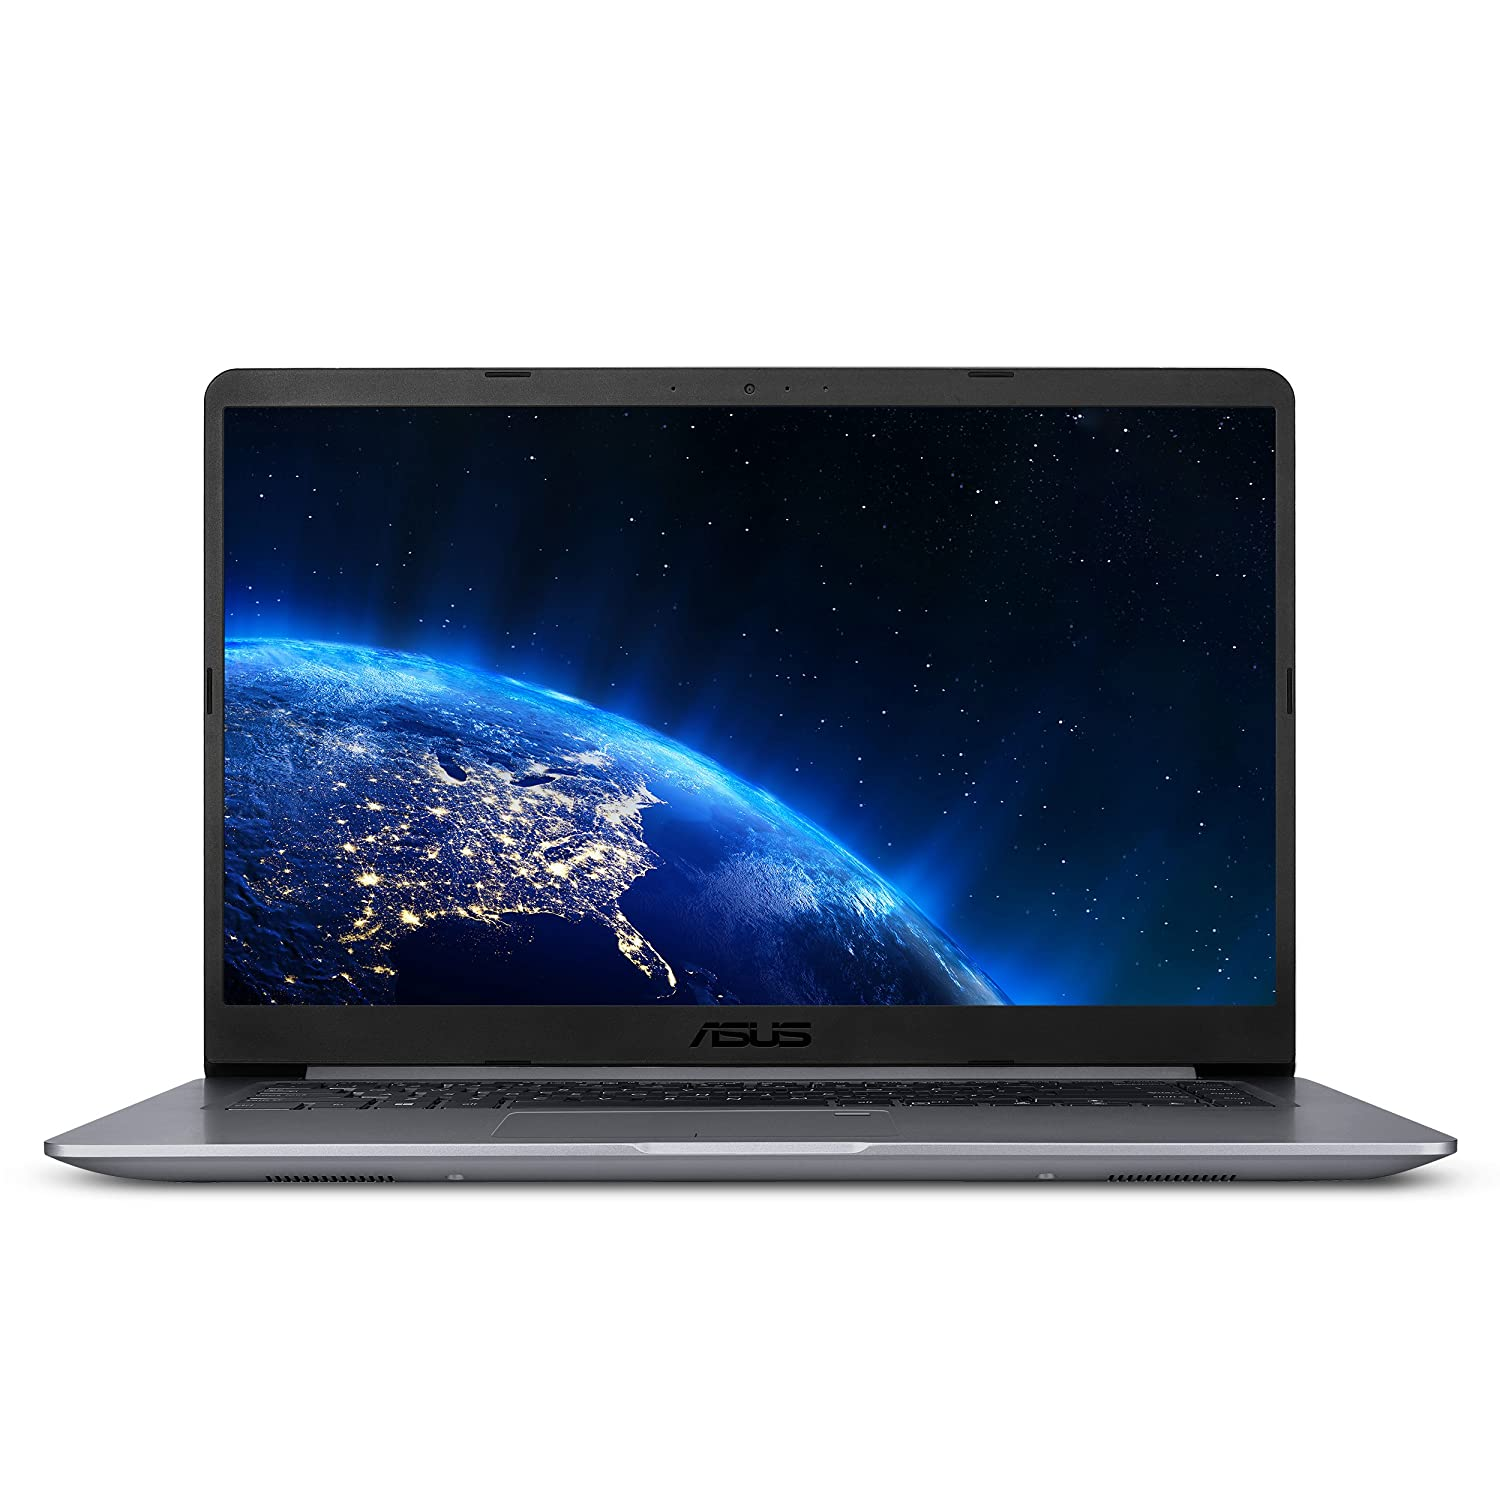 ASUS VivoBook F510UA FHD Laptop, Intel Core i5-8250U, 8GB RAM, 1TB HDD, USB-C, NanoEdge Display, Fingerprint